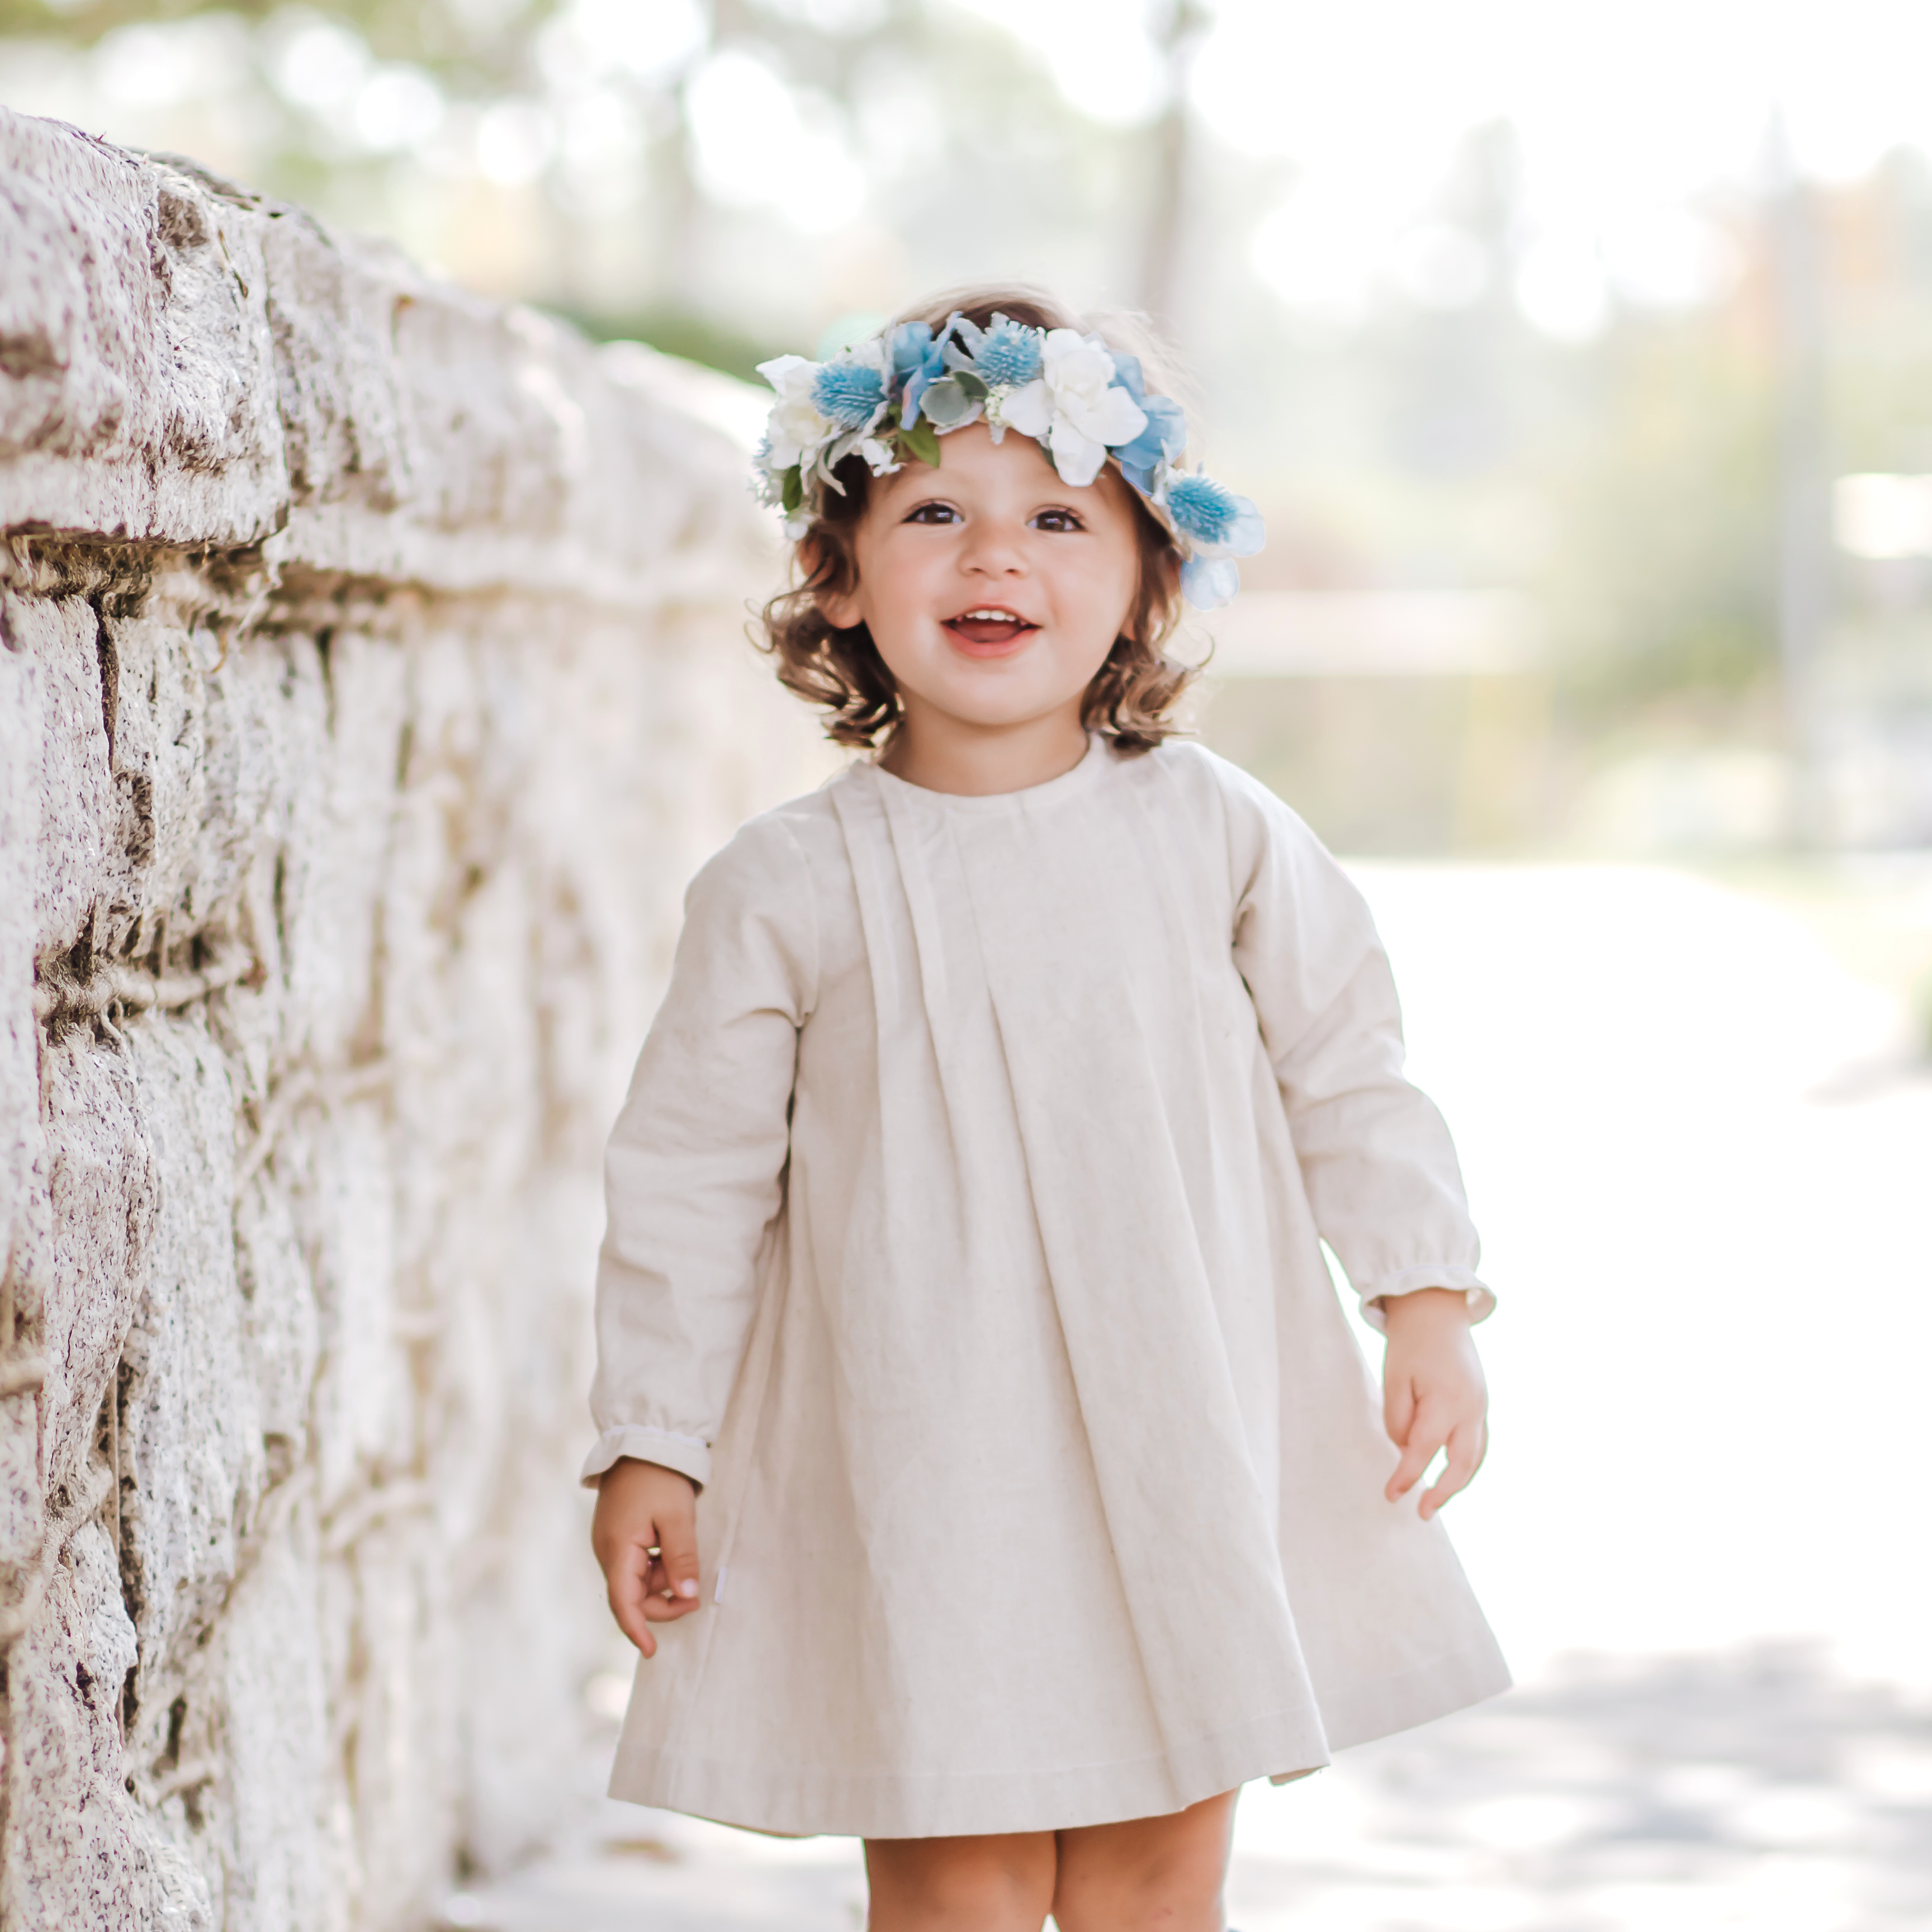 image of child wearing garments